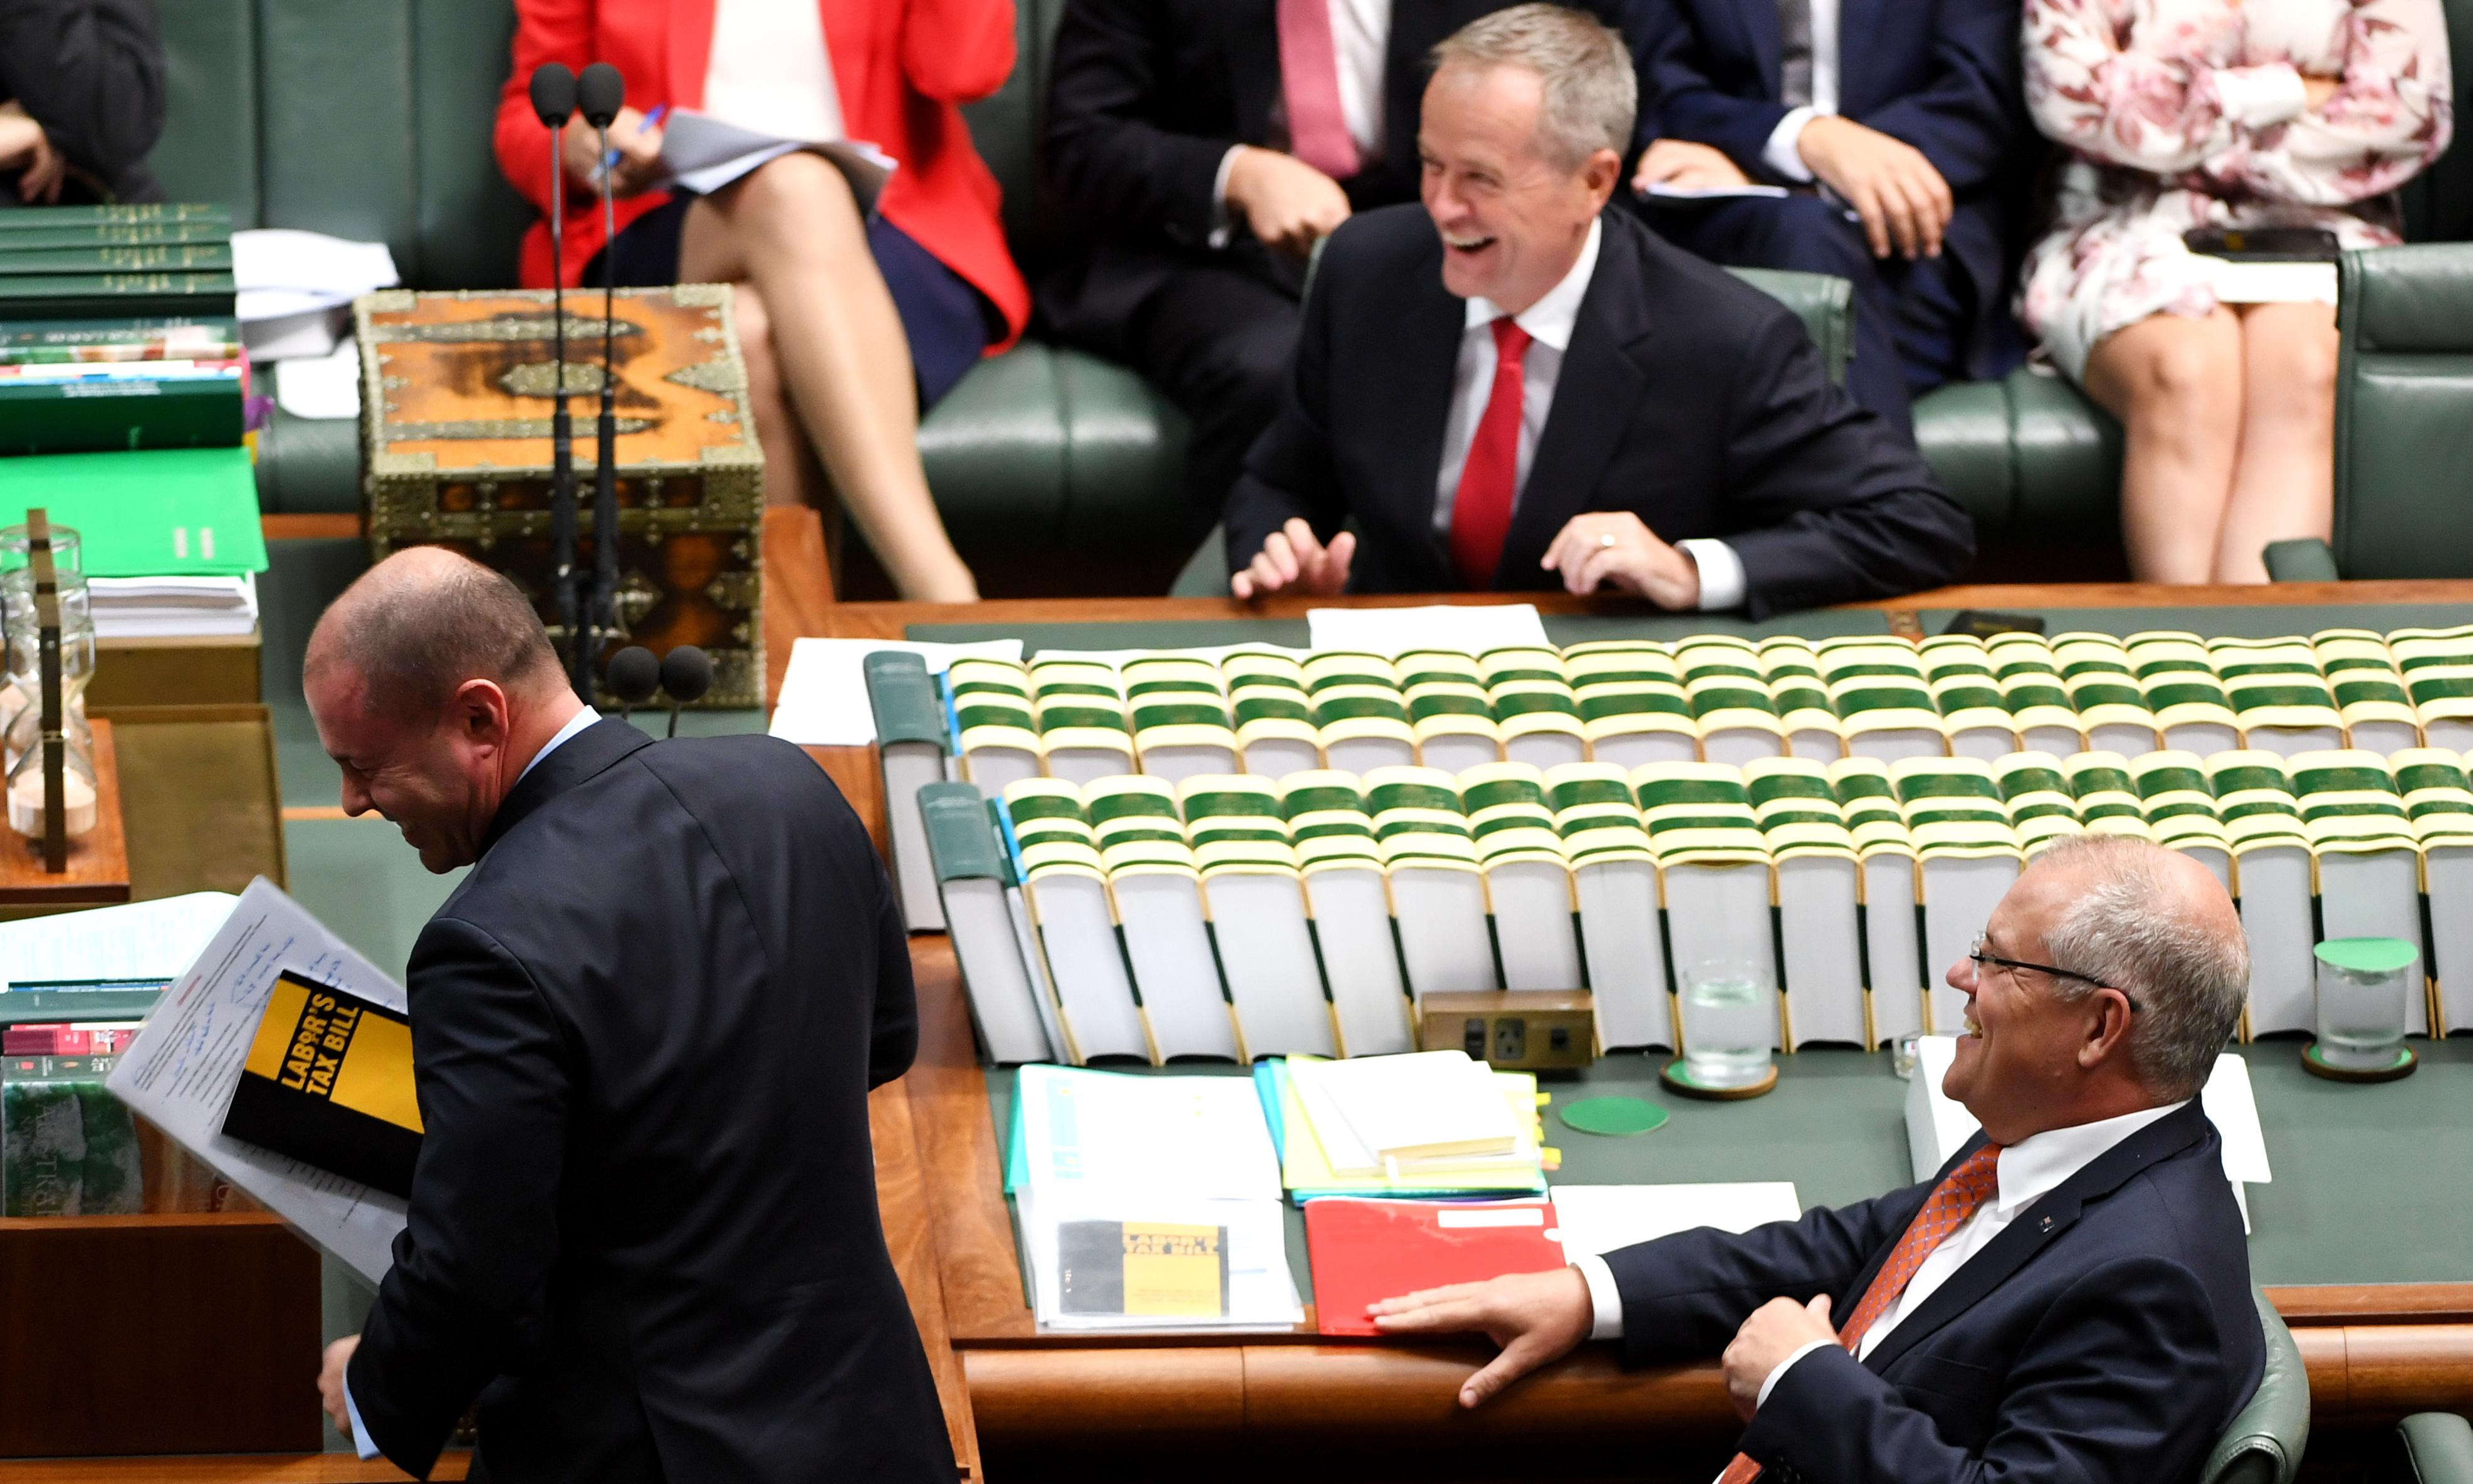 For all its noise, the budget just reinforces what voters already think